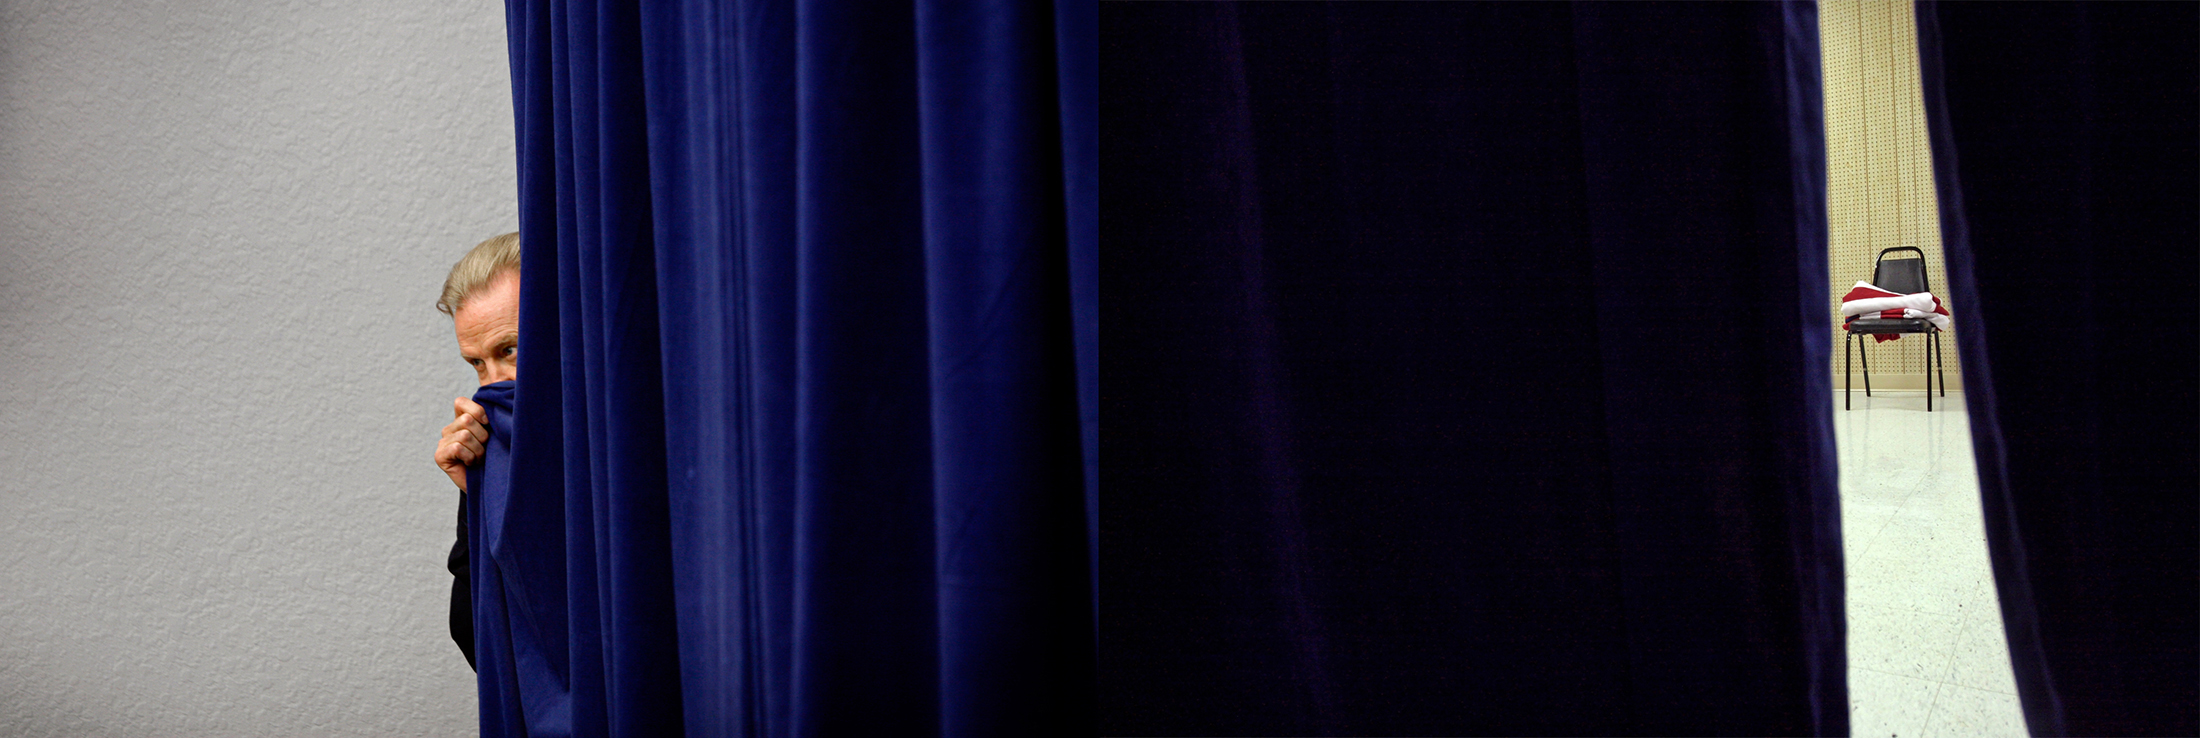 (L-R) Actor John Voight peeks out behind the curtains, from which U.S. Presidential hopeful Rudy Giuliani (R-NY) is about to enter a rally with him and former FBI director Louis J. Freeh at the Fantasy of Flight museum in Polk City, Florida, on Sunday, January 20, 2008; and an American flag sits folded on a chair backstage as U.S. Presidential hopeful Sen. Hillary Clinton (D-NY) speaks at the Bluegrass Cafe in Tama, Iowa, on Nov. 19, 2007. (Photo by: Yana Paskova for The New York Times)